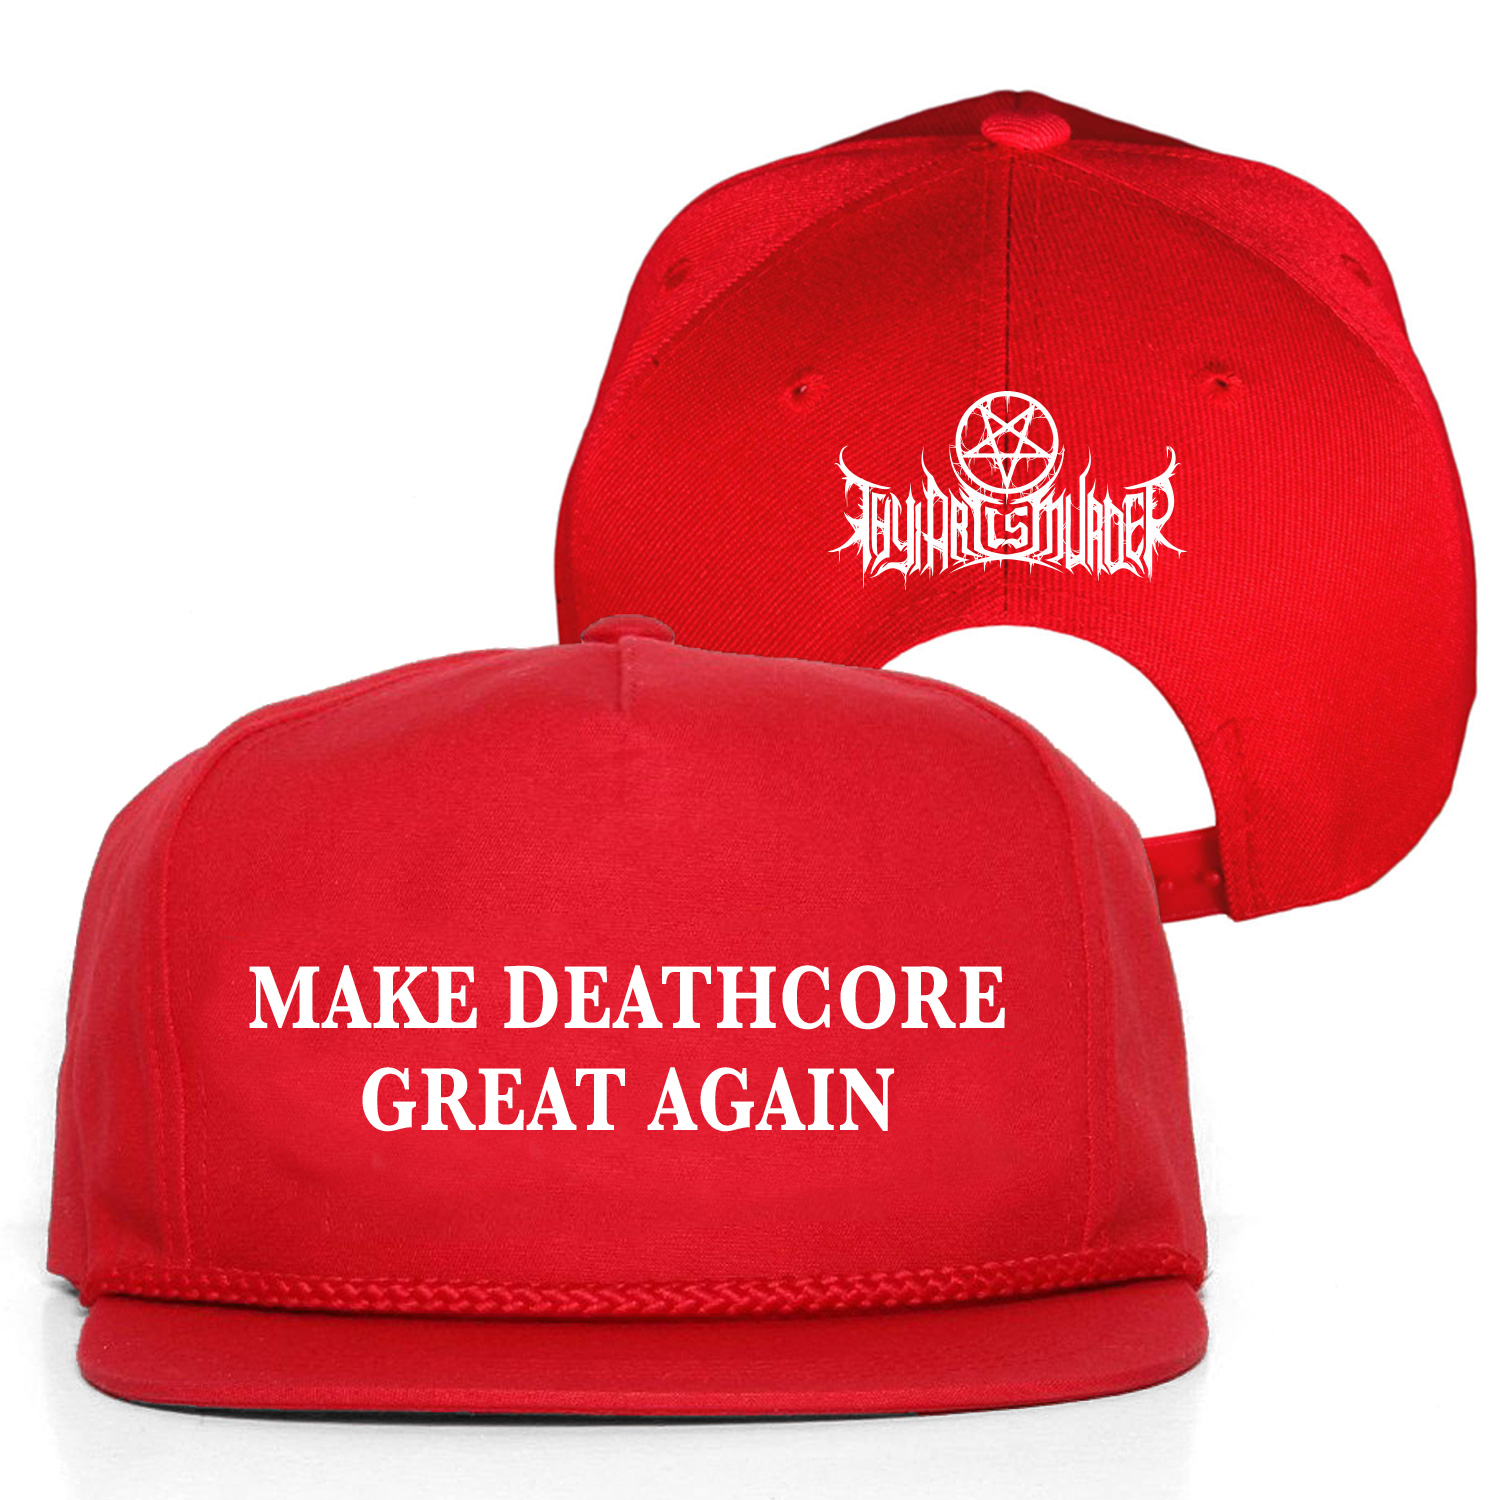 Make Deathcore Great Again